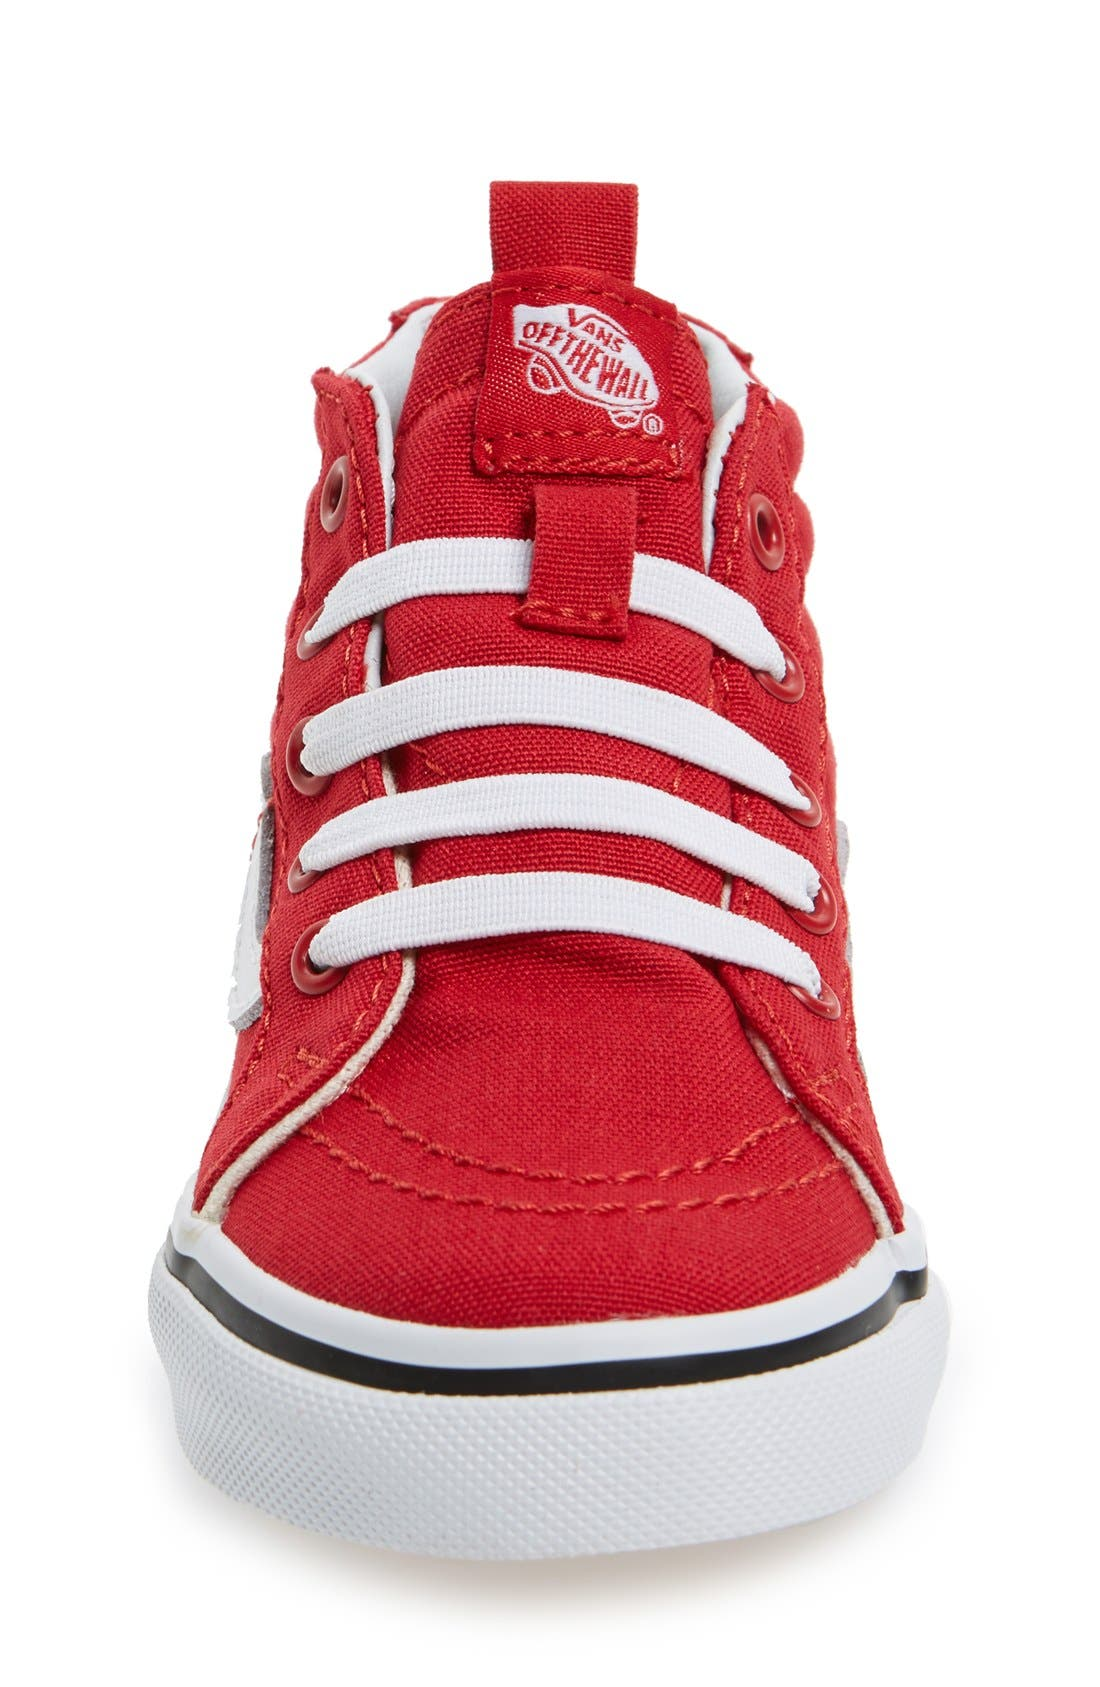 VANS, 'Sk8-Hi' Zip Sneaker, Alternate thumbnail 2, color, RACING RED/TRUE WHITE